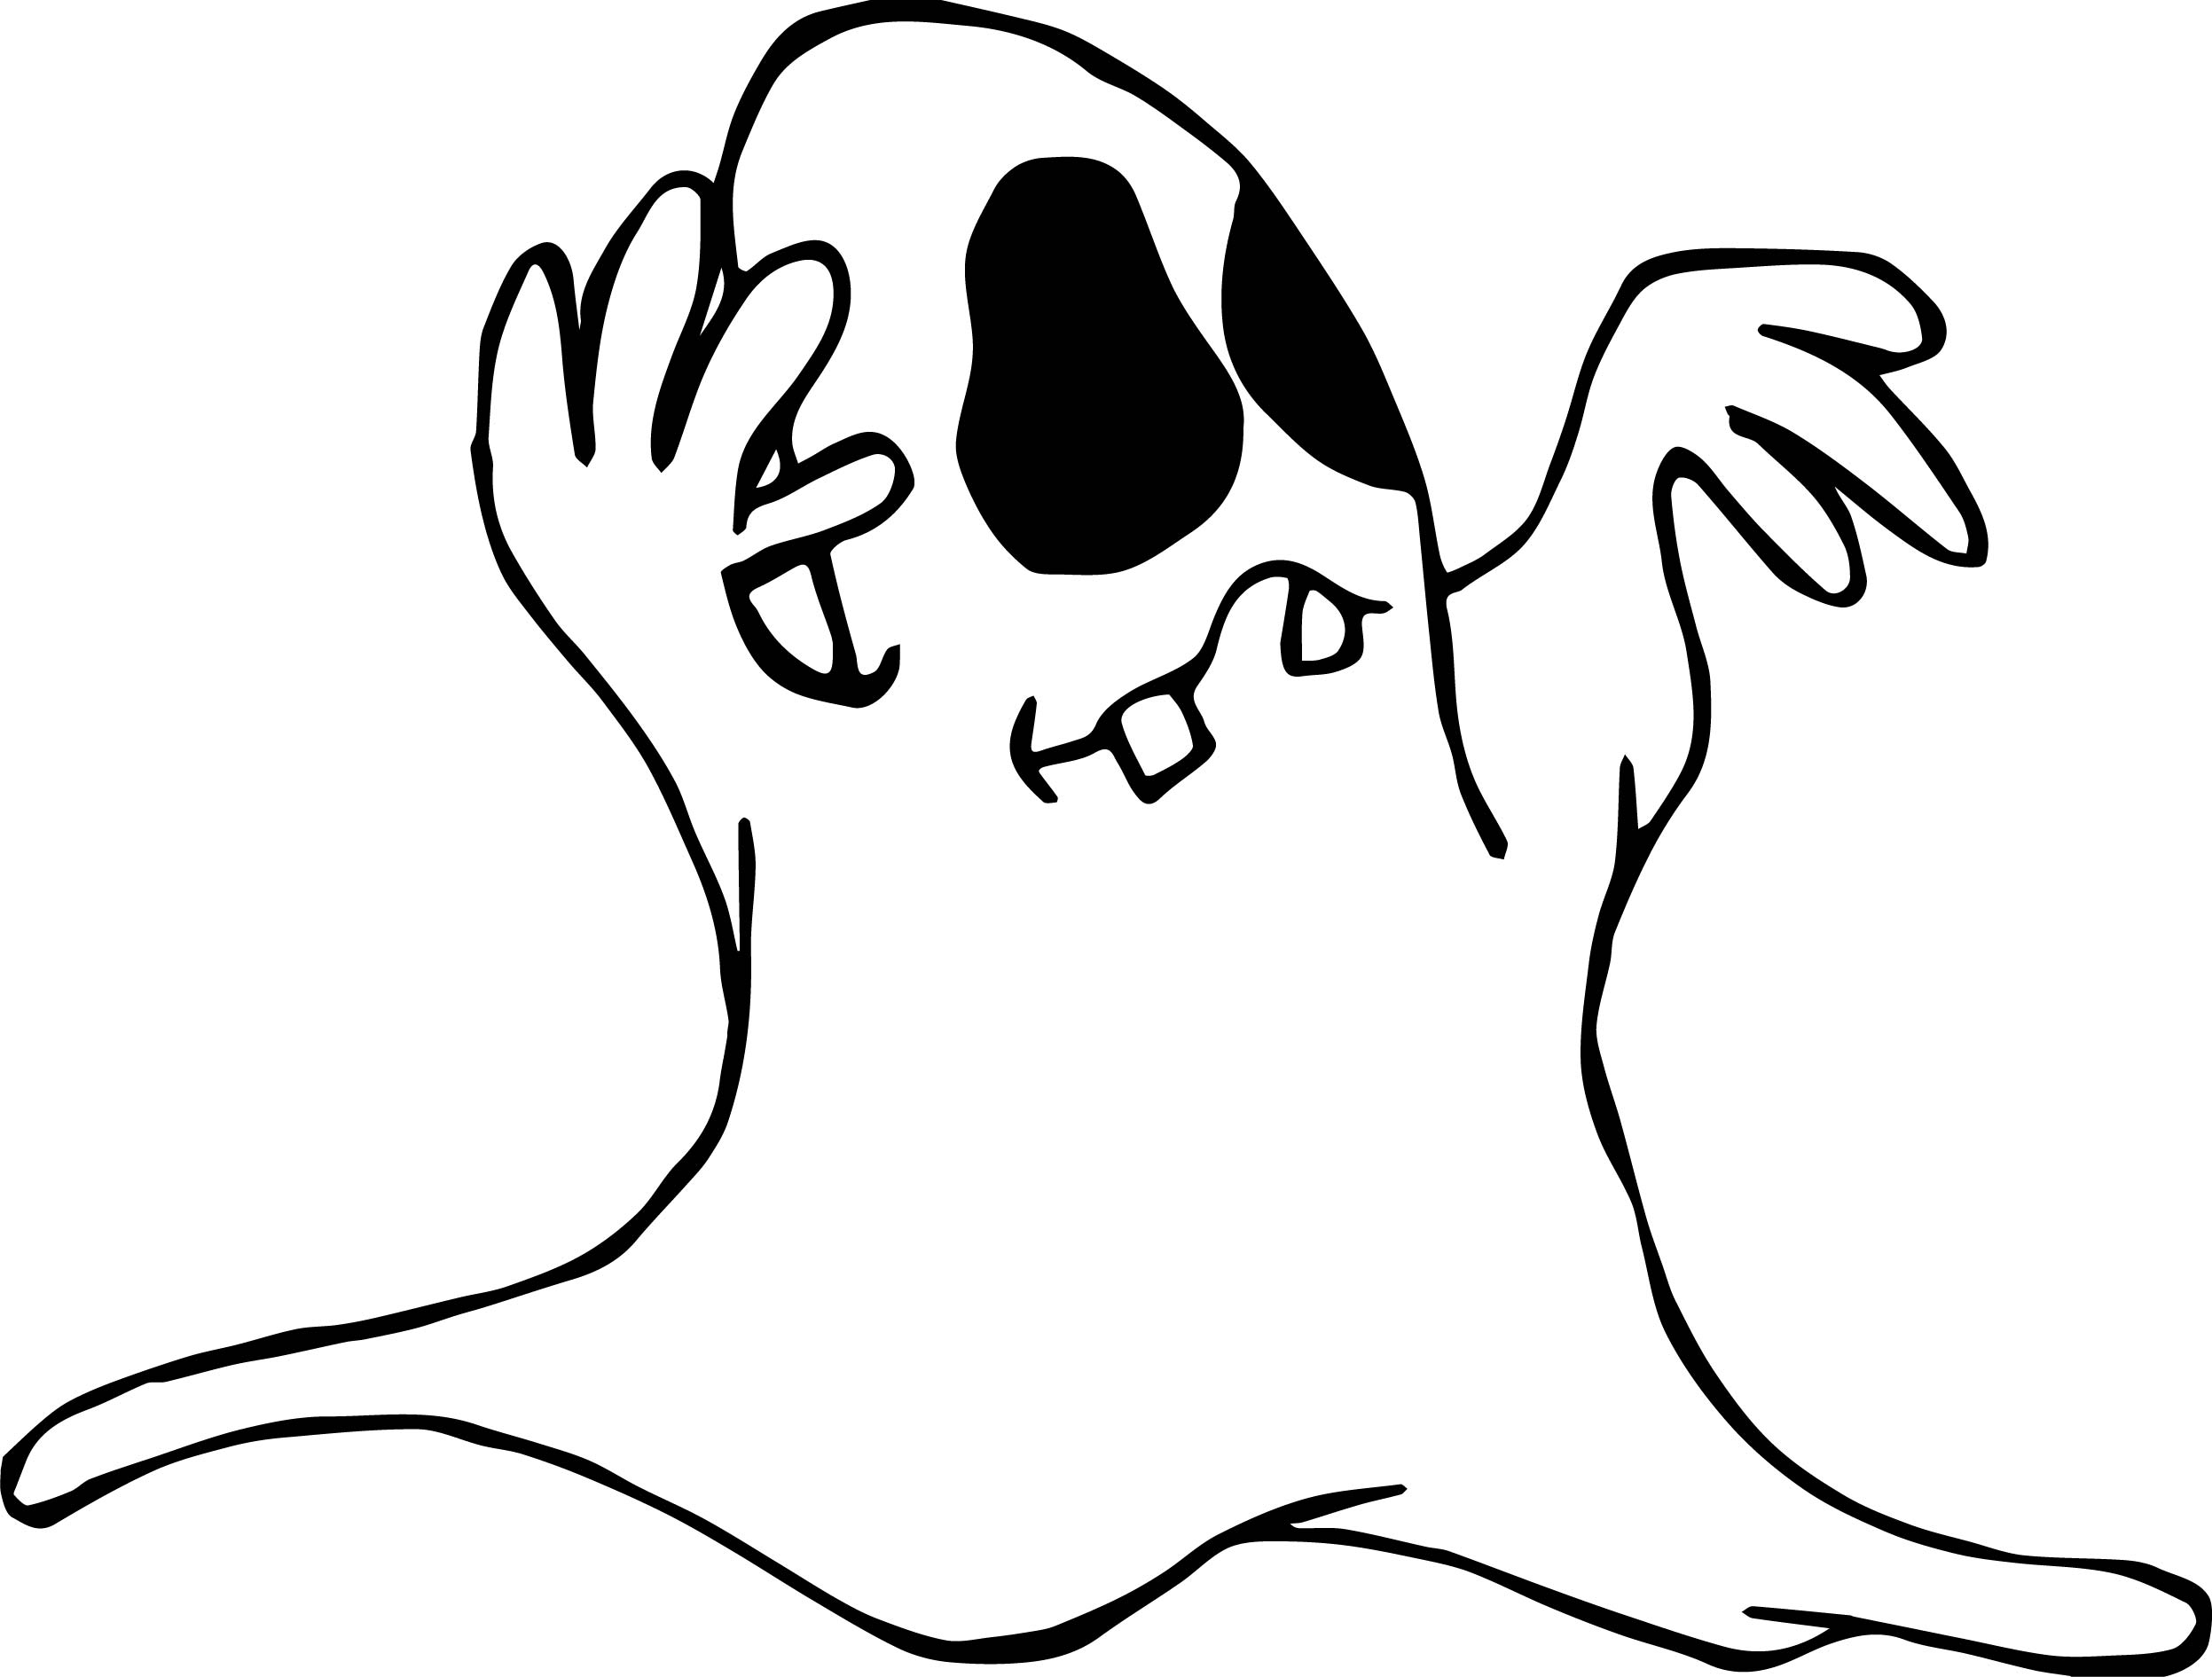 Halloween Ghost Coloring Page | Wecoloringpage.com